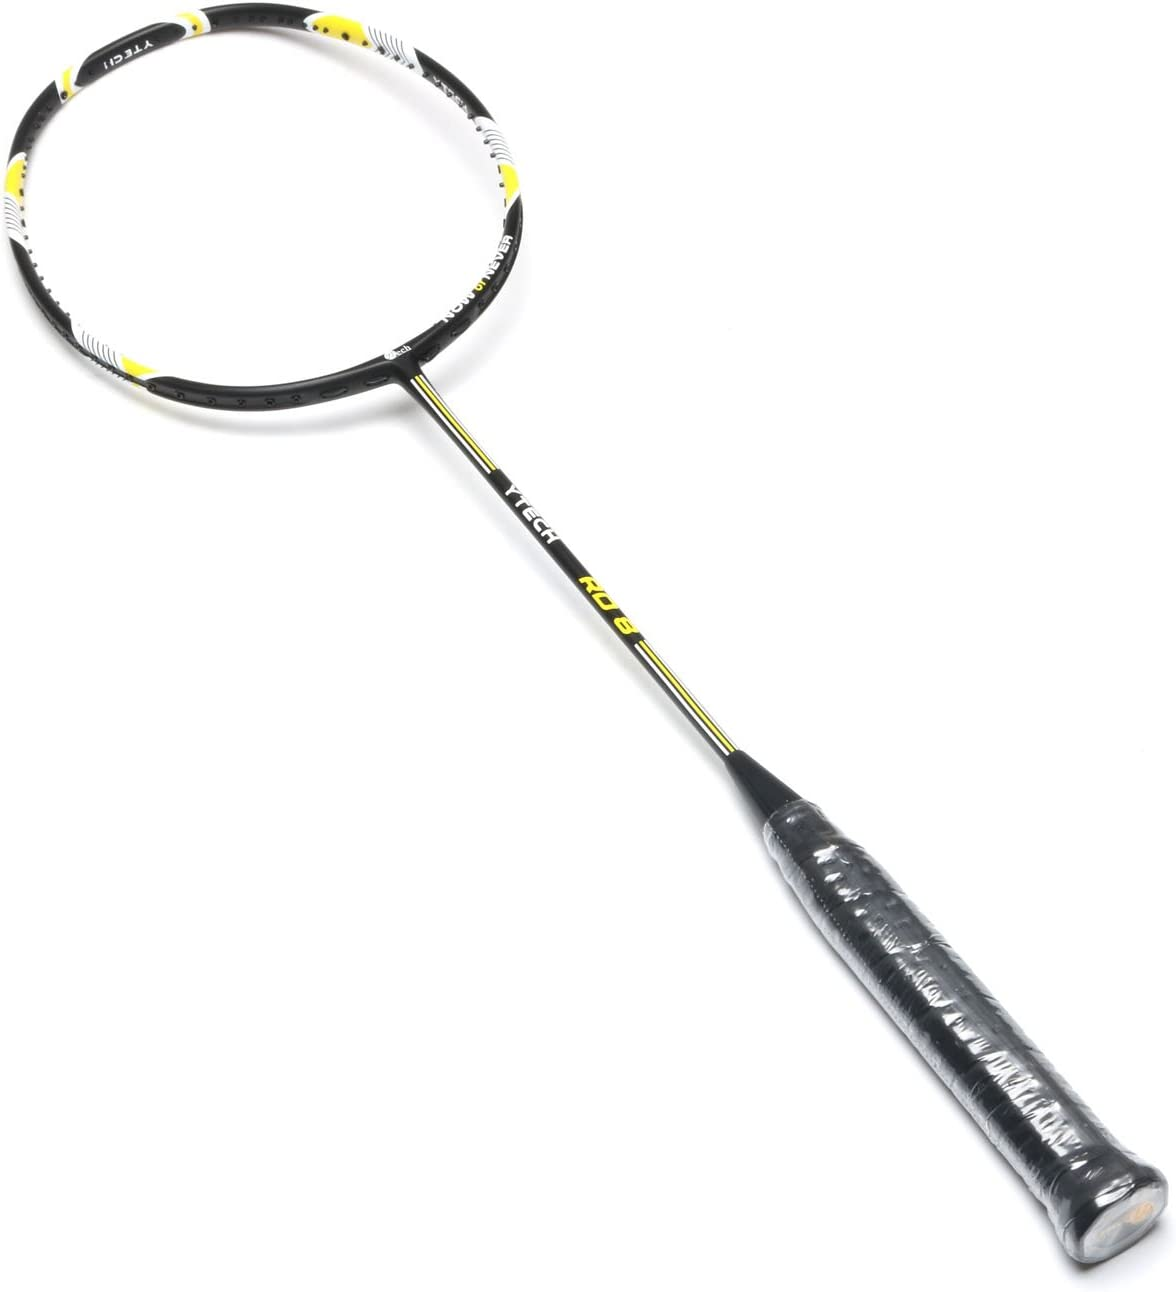 YTech Japan AT700 Carbon Yarn M30 Combination Single Badminton Racket with Full Carbon Fiber, Foamed Solid core Frame, 4U 80-84 g , Offensive, Durable and Ultra-Light Badminton Racket